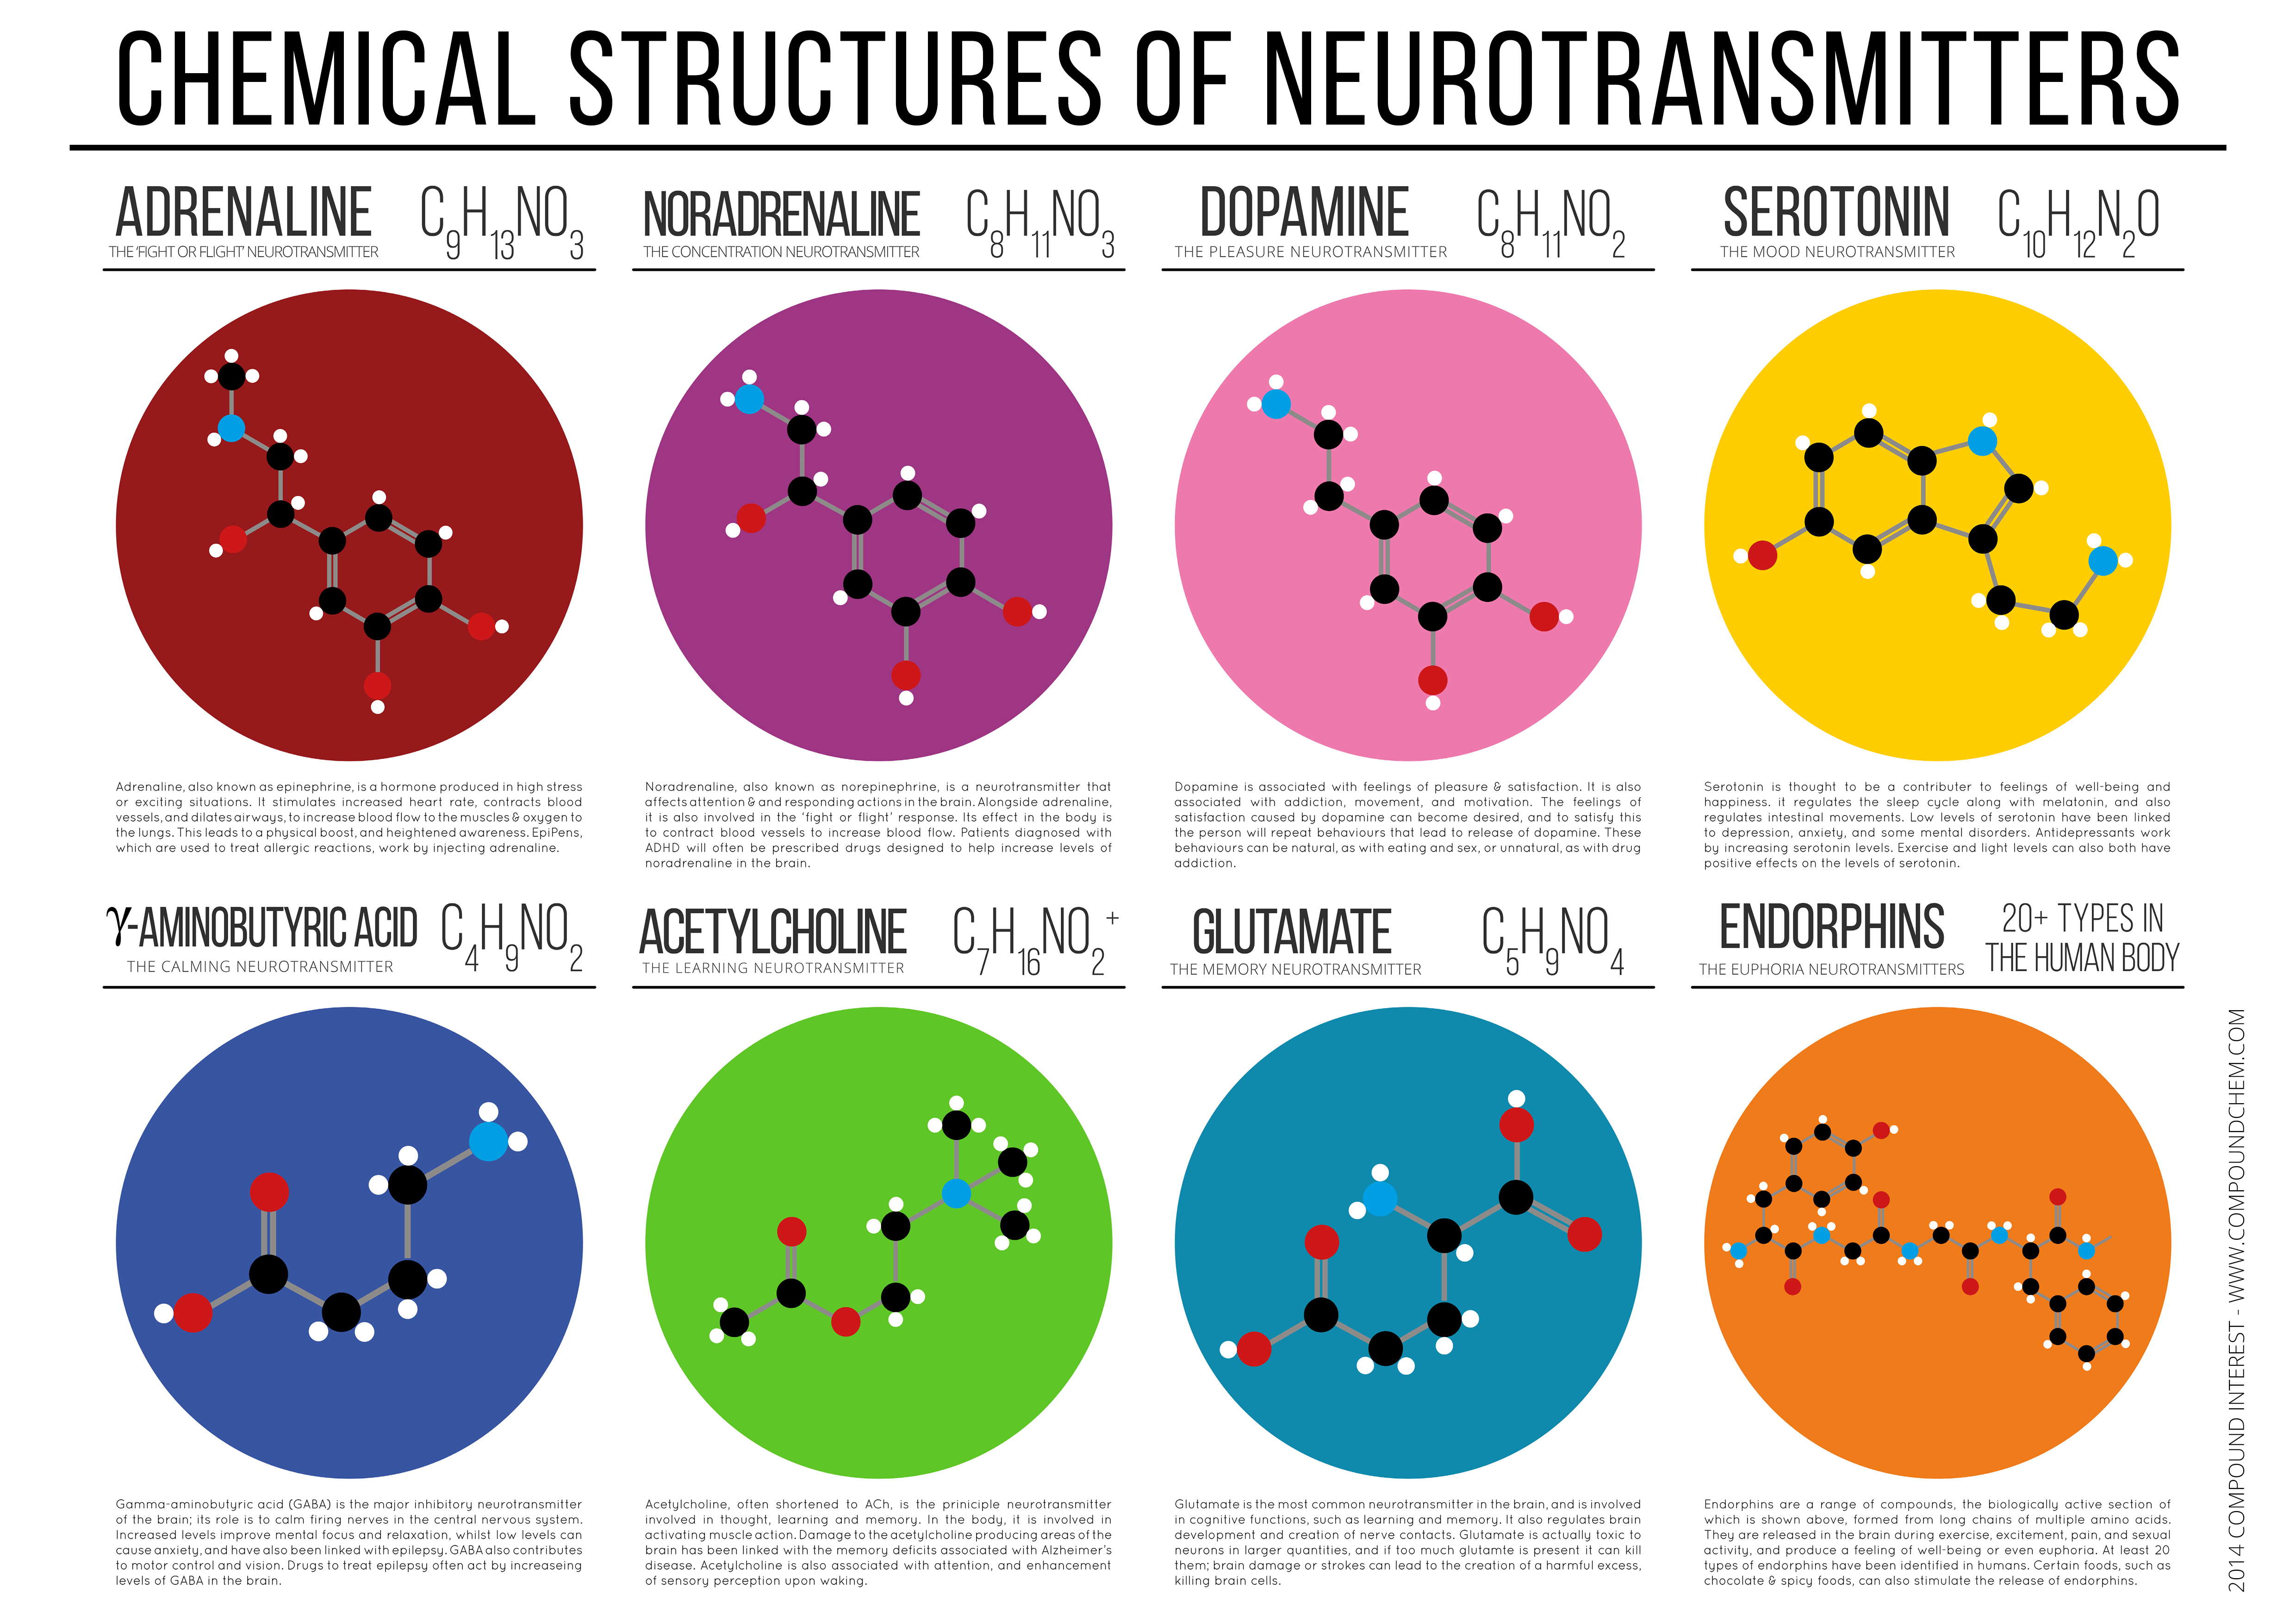 Adhd Drugs Increase Brain Glutamate >> Chemical Structures Of Neurotransmitters Infographic Chemistry